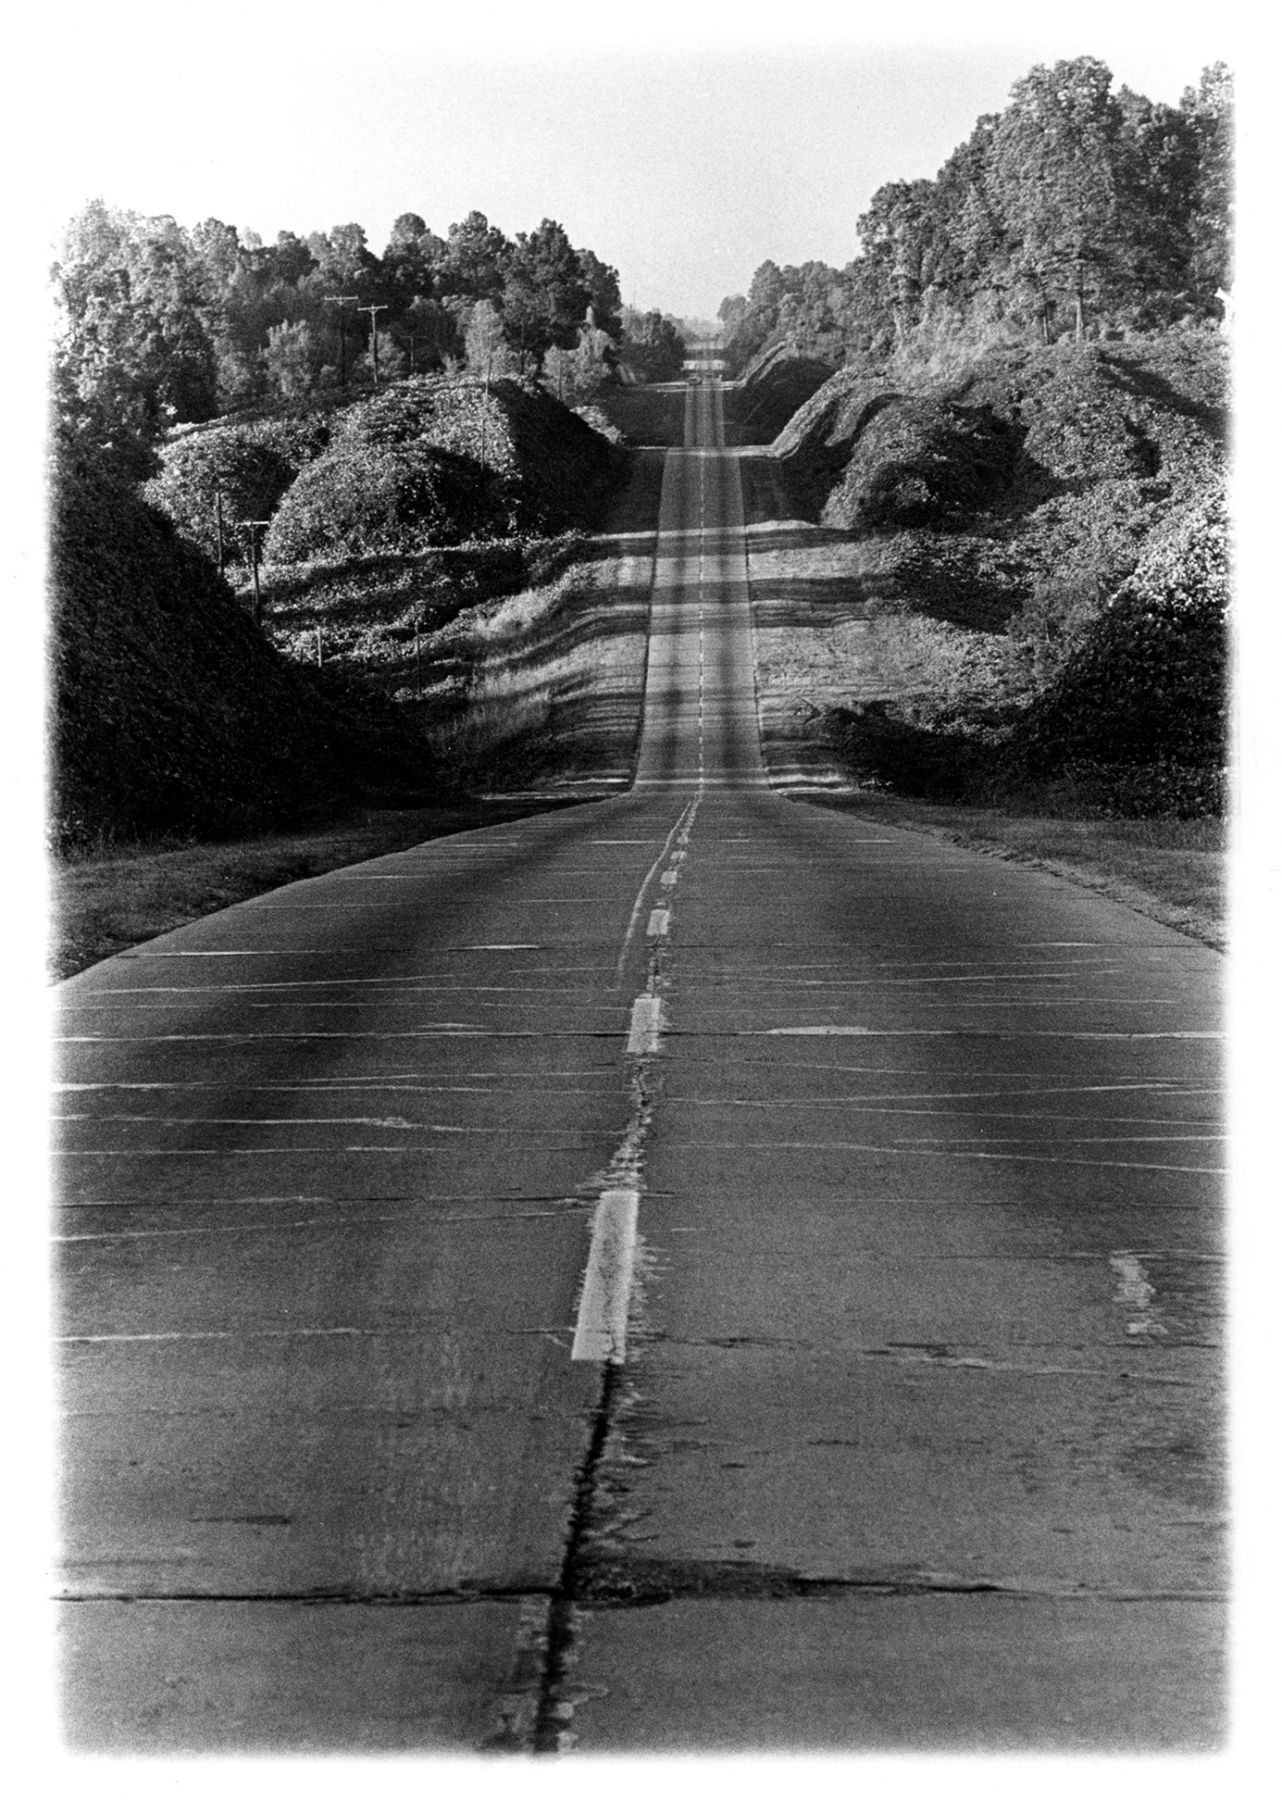 Copyright Danny Lyon / Magnum Photos, Road to Yazoo City, Mississippi, 1964